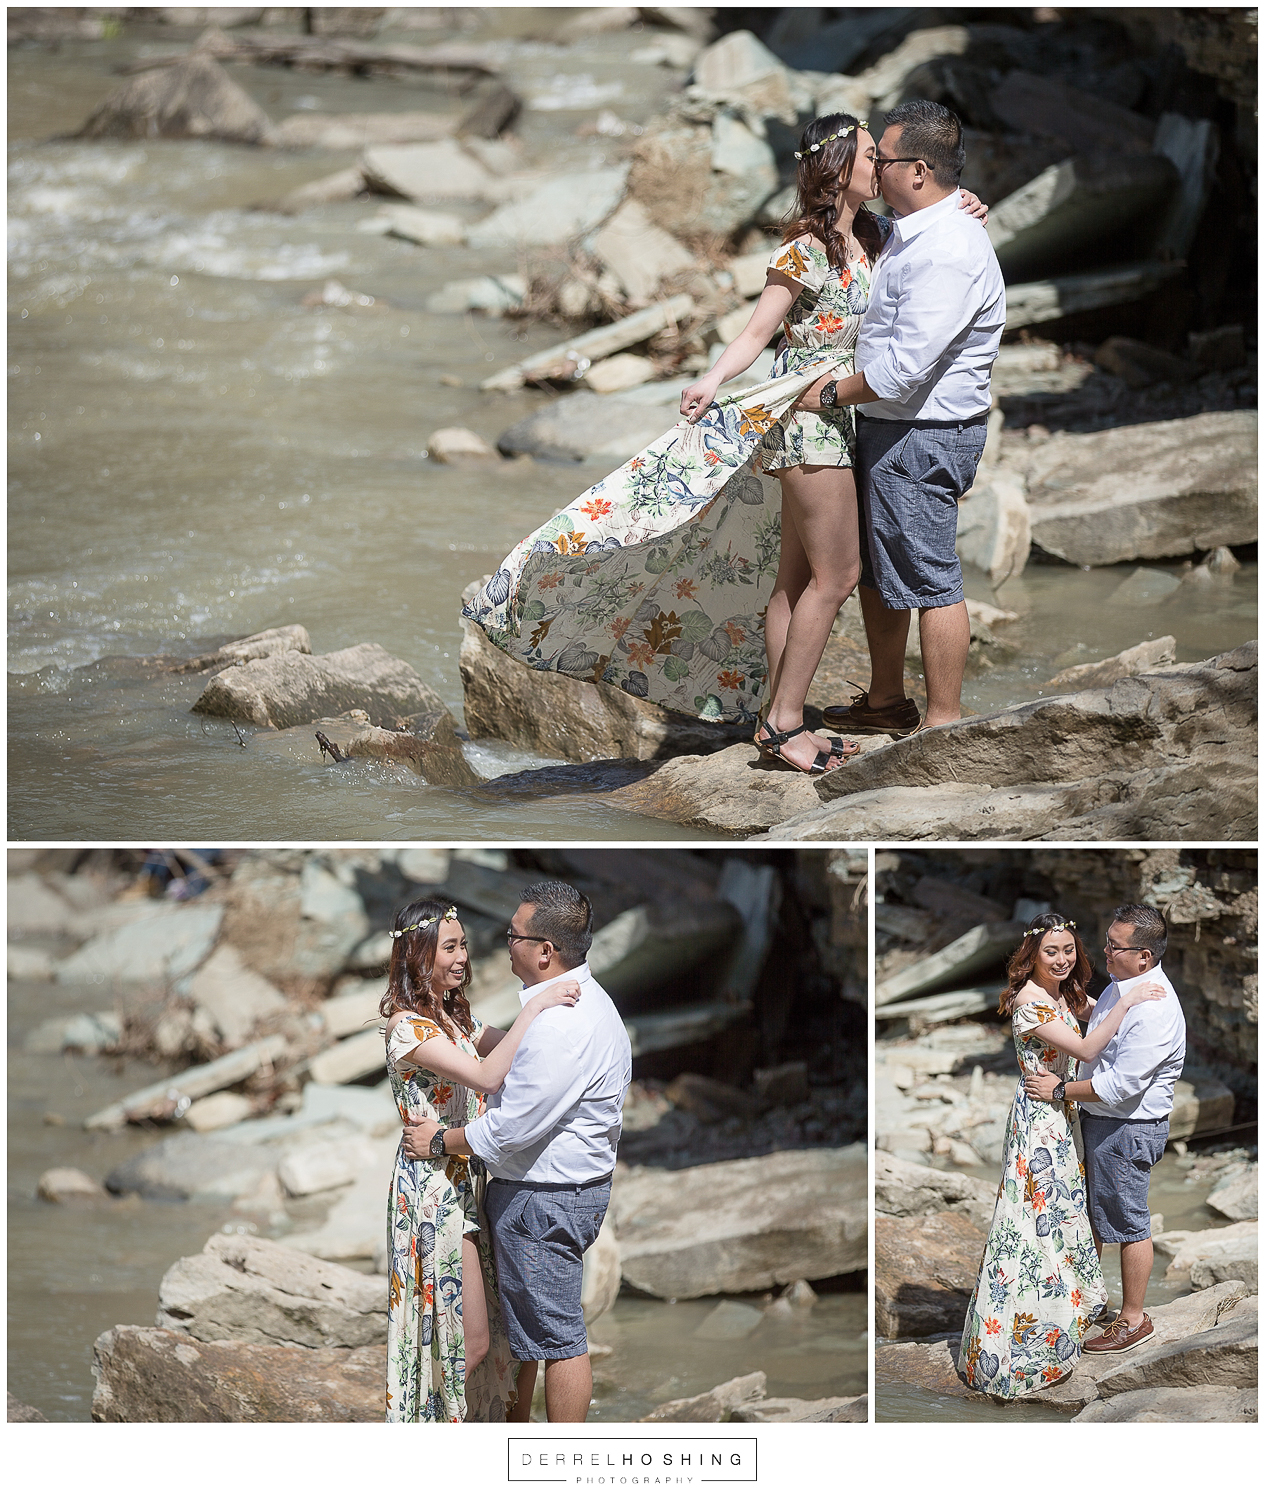 Albion-Falls-Engagment-Shoot-Hamilton-Toronto-Wedding-Photographer-Derrel-Hoshing-0010.jpg